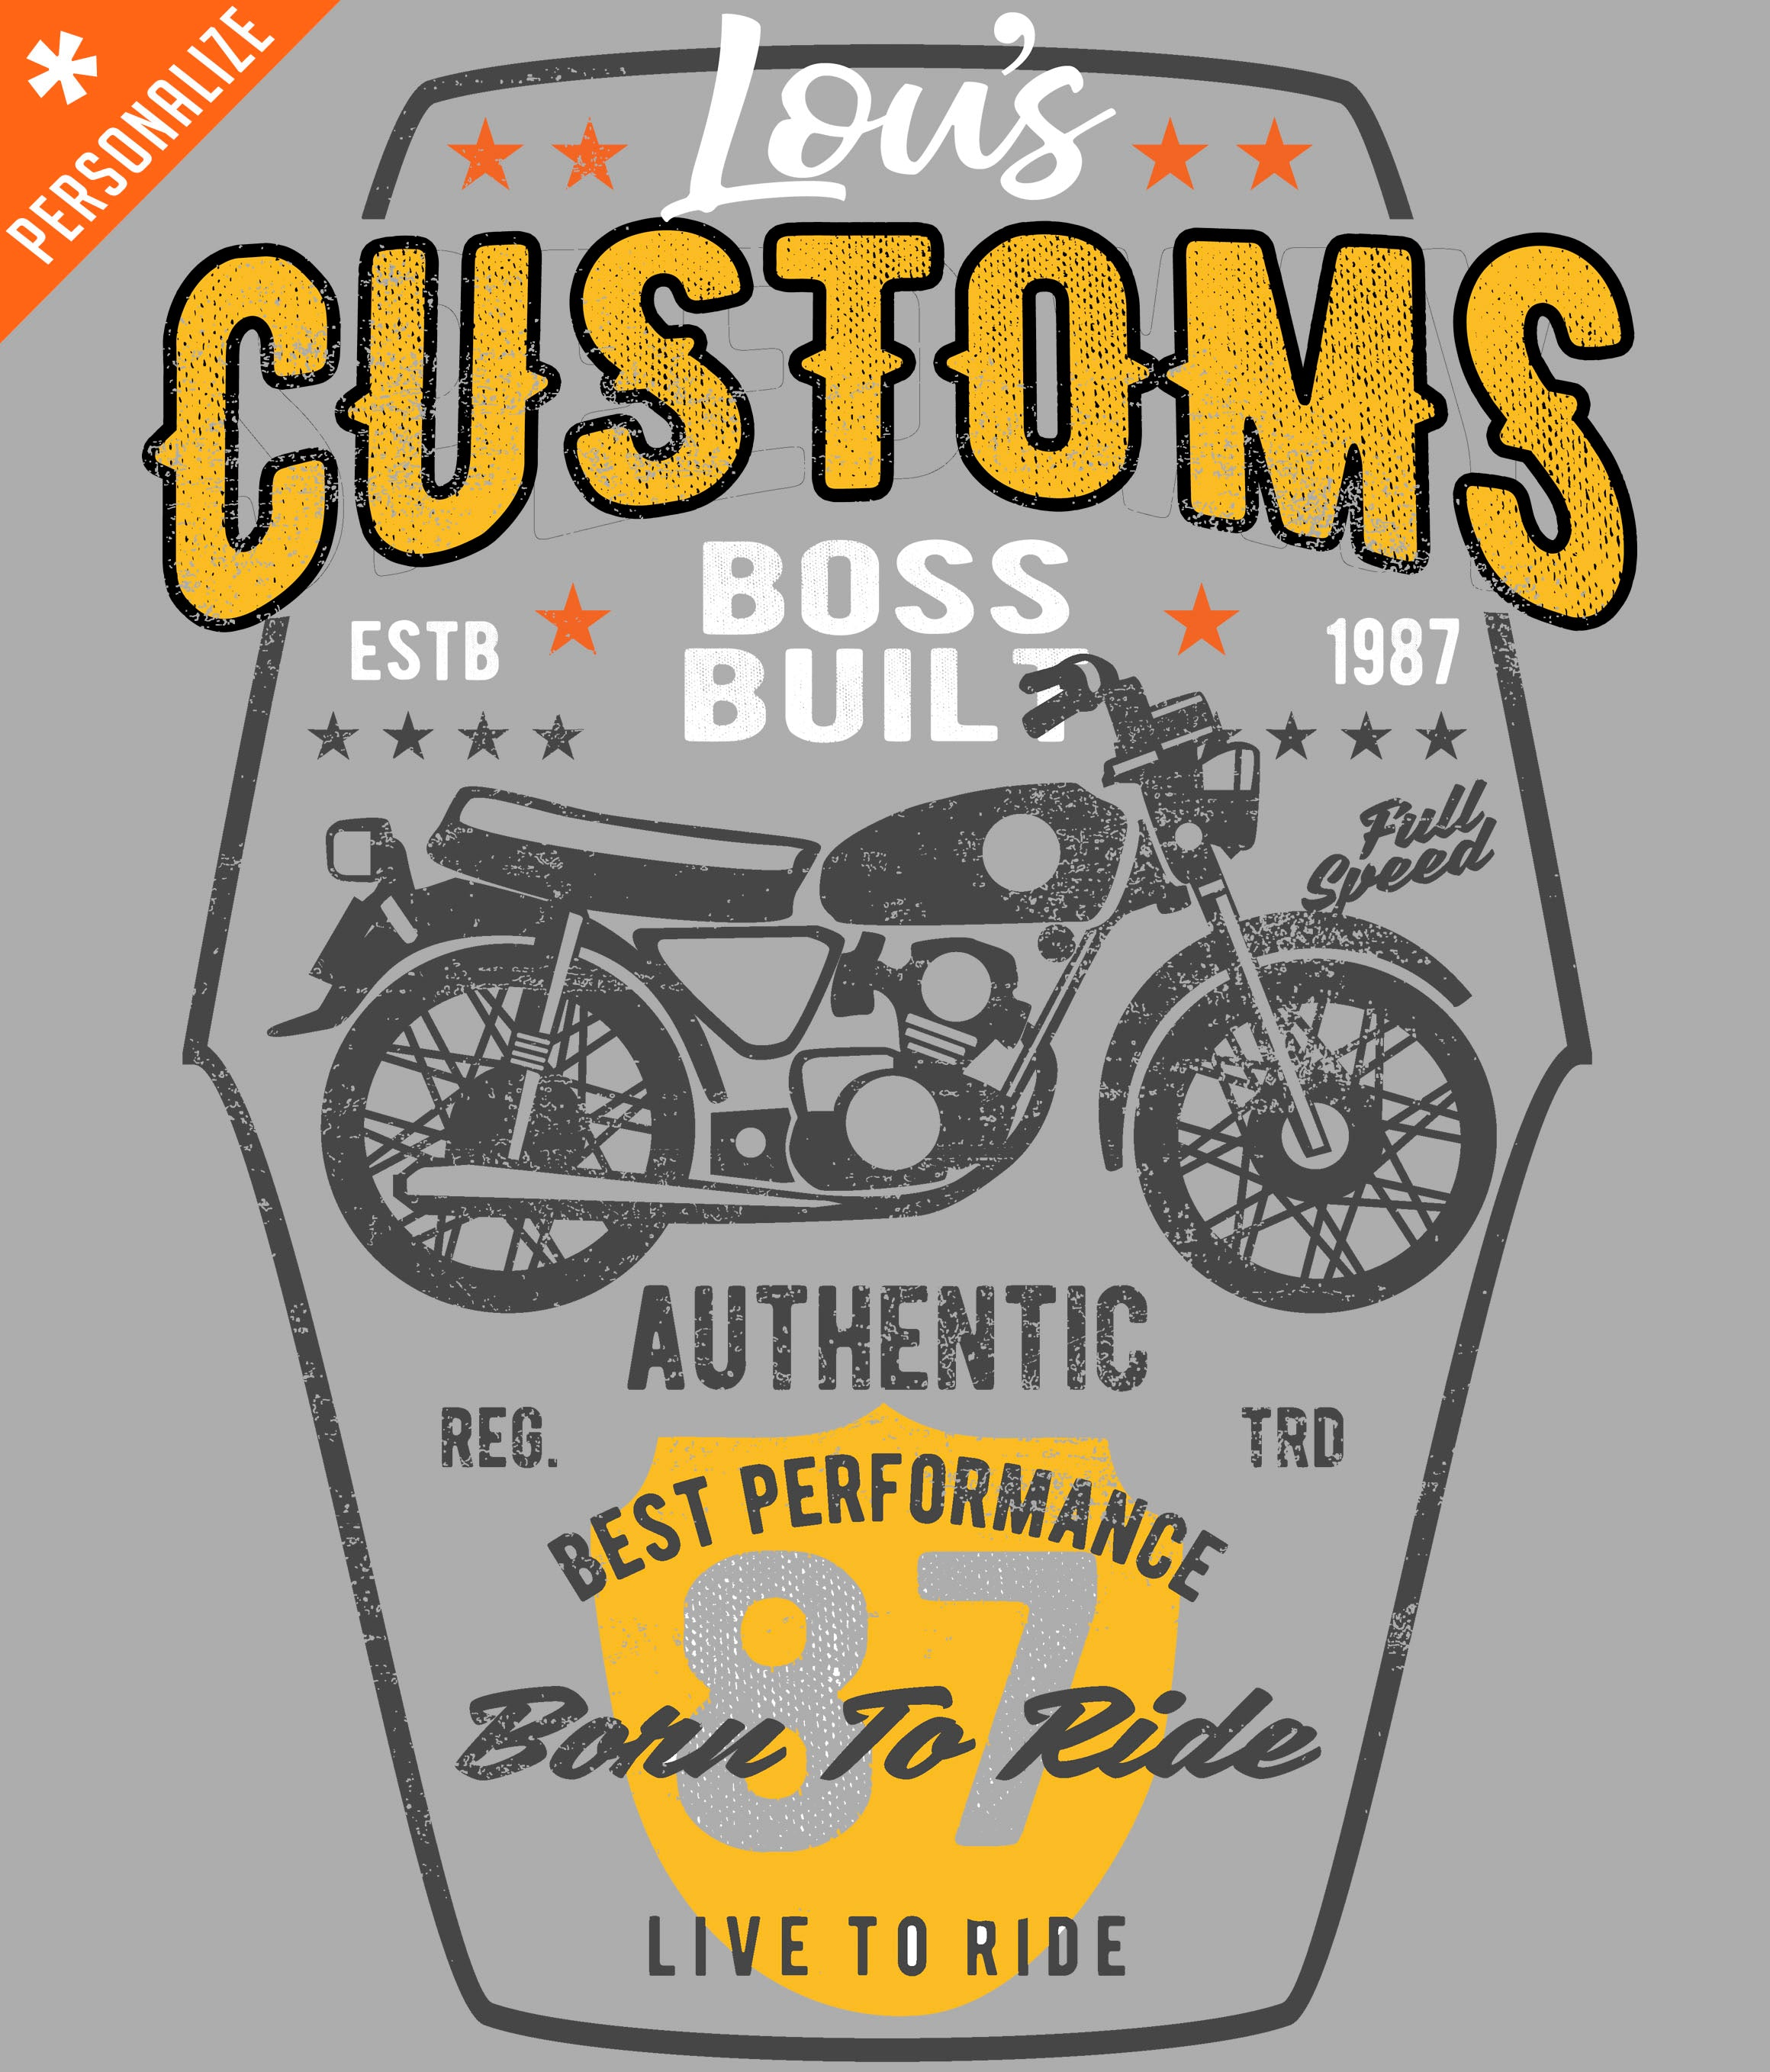 PERSONALIZED BIKER T-SHIRT DESIGN CLOSEUP